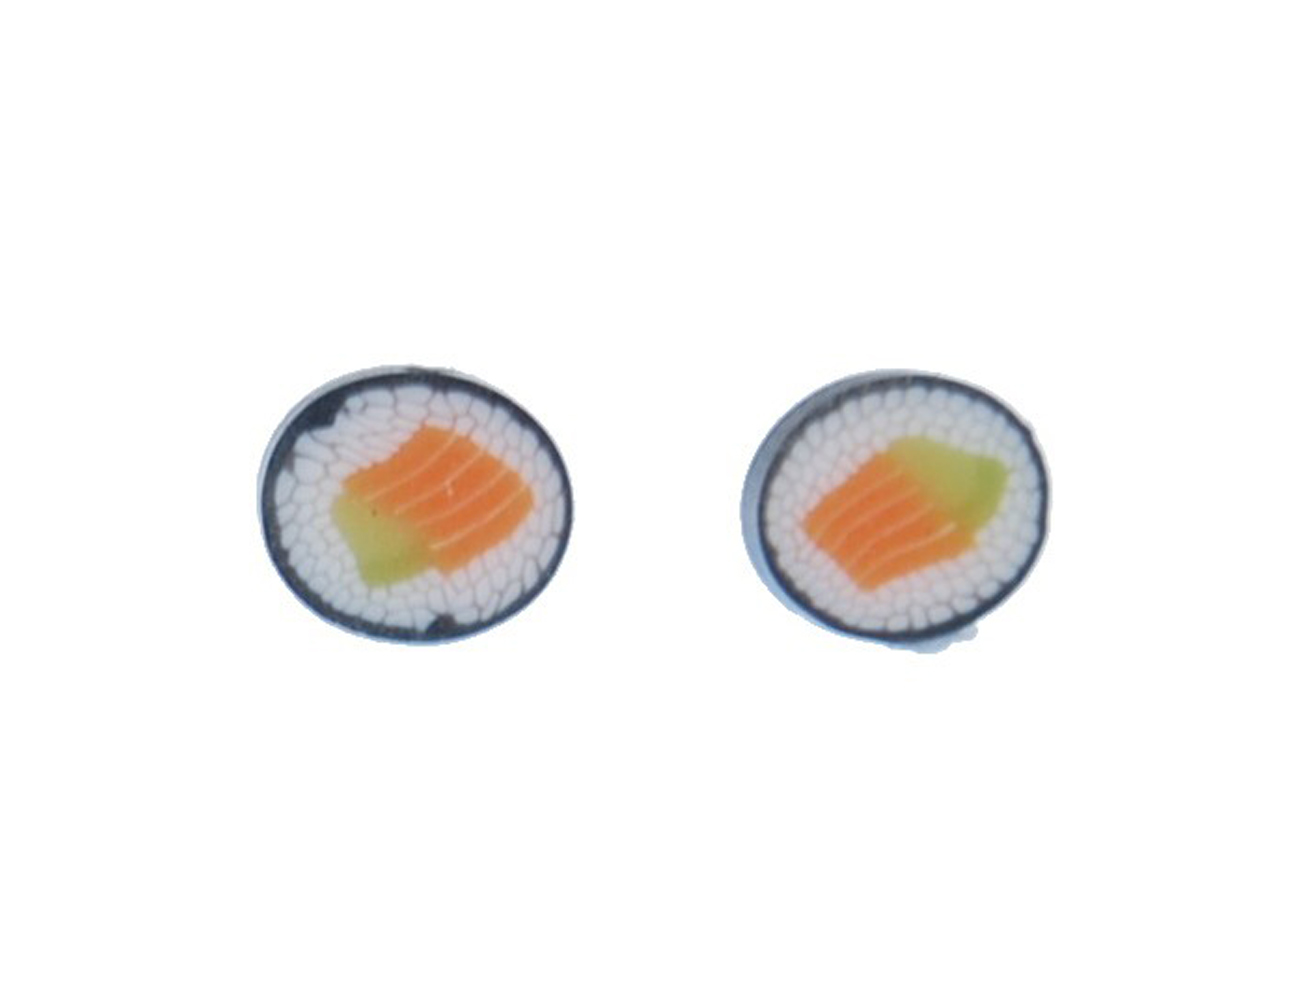 sushi ohrstecker stecker miniblings ohrringe essen japan. Black Bedroom Furniture Sets. Home Design Ideas